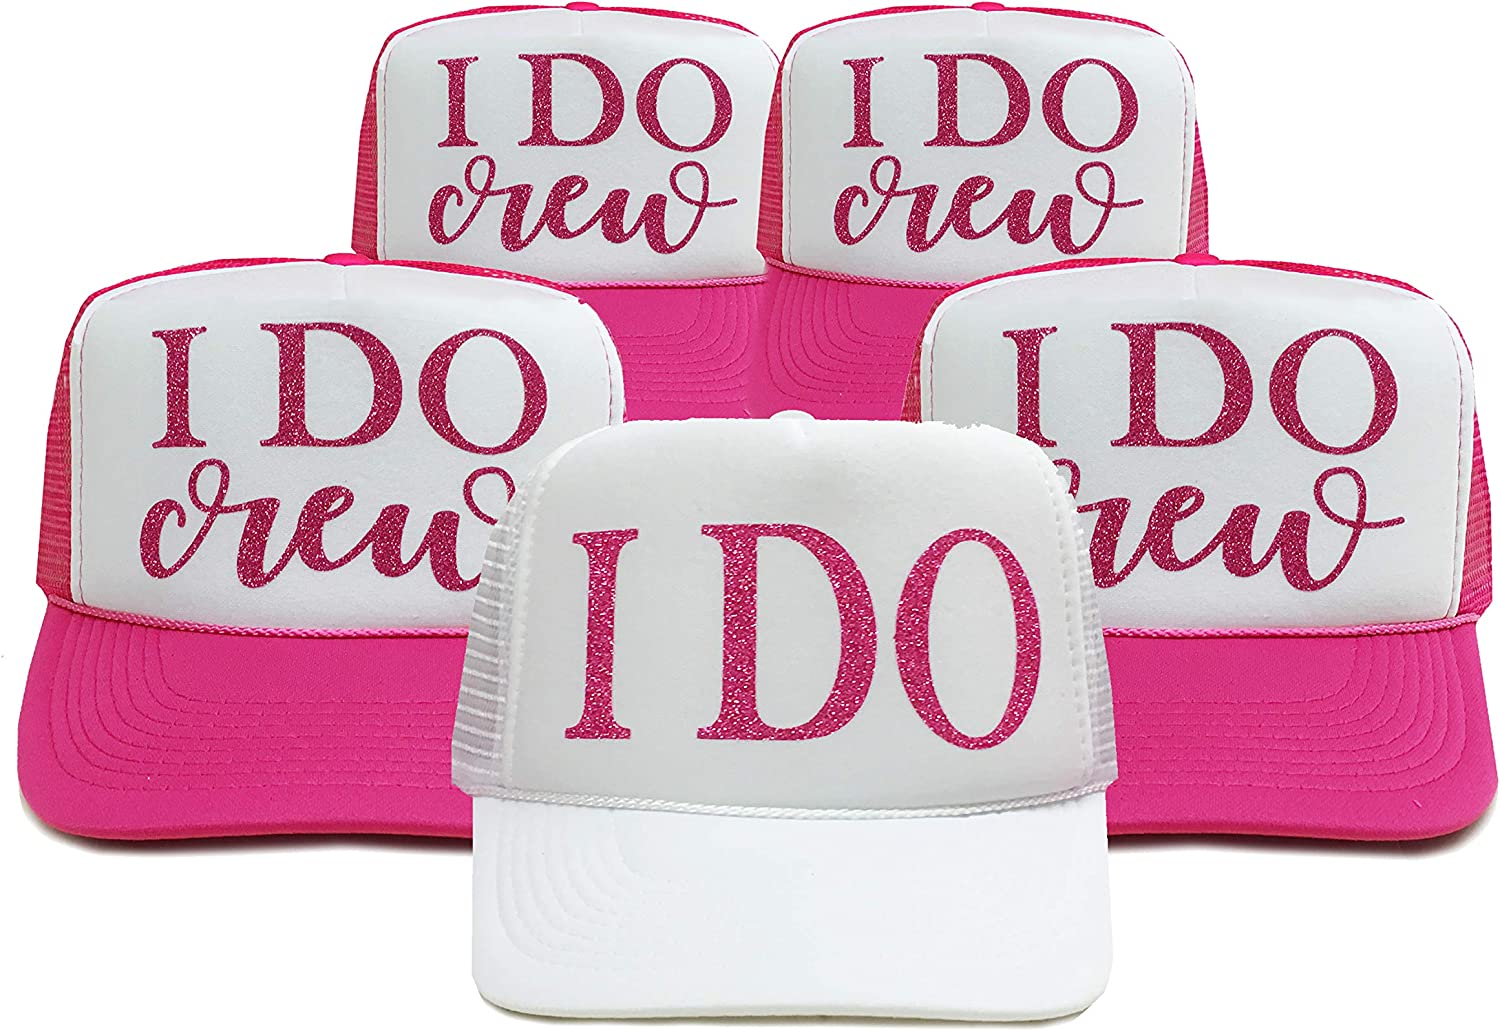 Classy Bride I DO Crew Bachelorette Party Hats  Set of 5